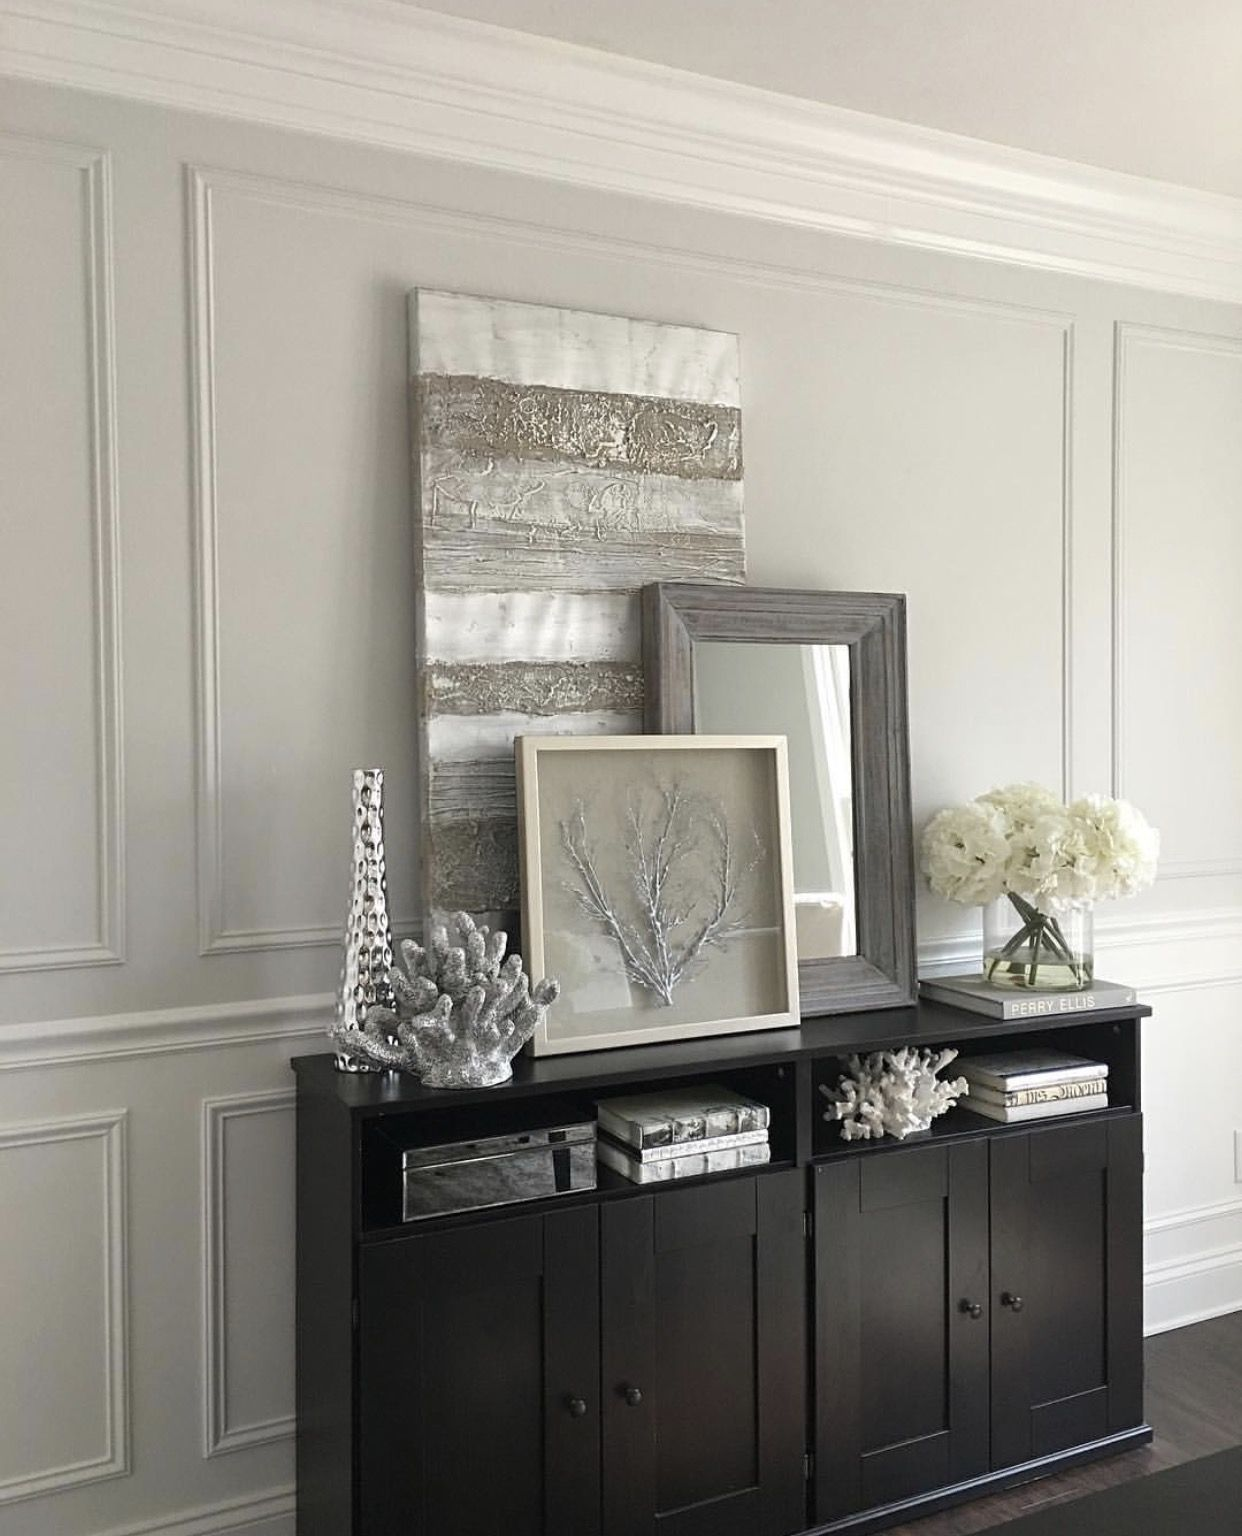 pin by tiffany rios on things i want in my home hallway on small entryway console table decor ideas make a statement with your home s entryway id=83575